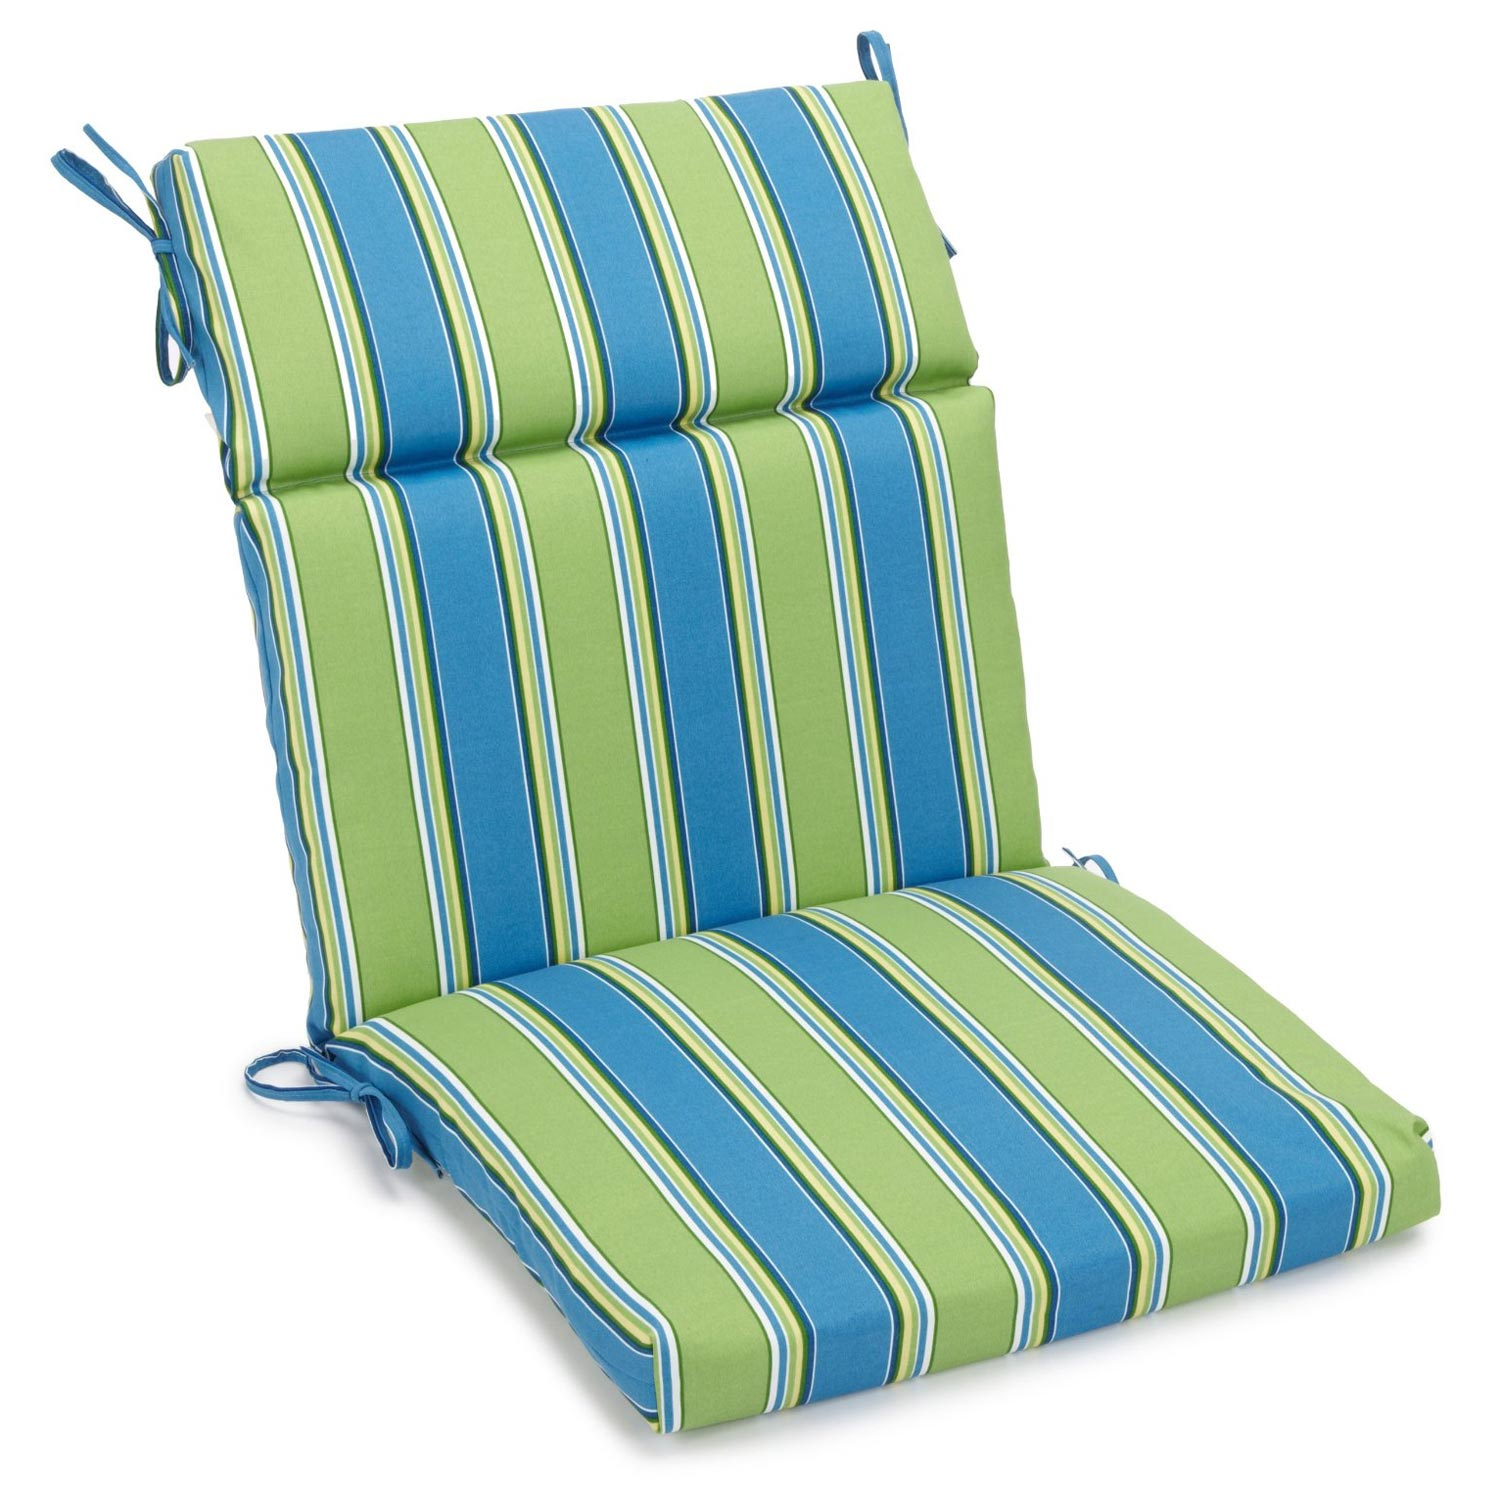 wicker chair cushions with ties ergonomic quilting 3 section 22 x 45 patio cushion patterned fabric